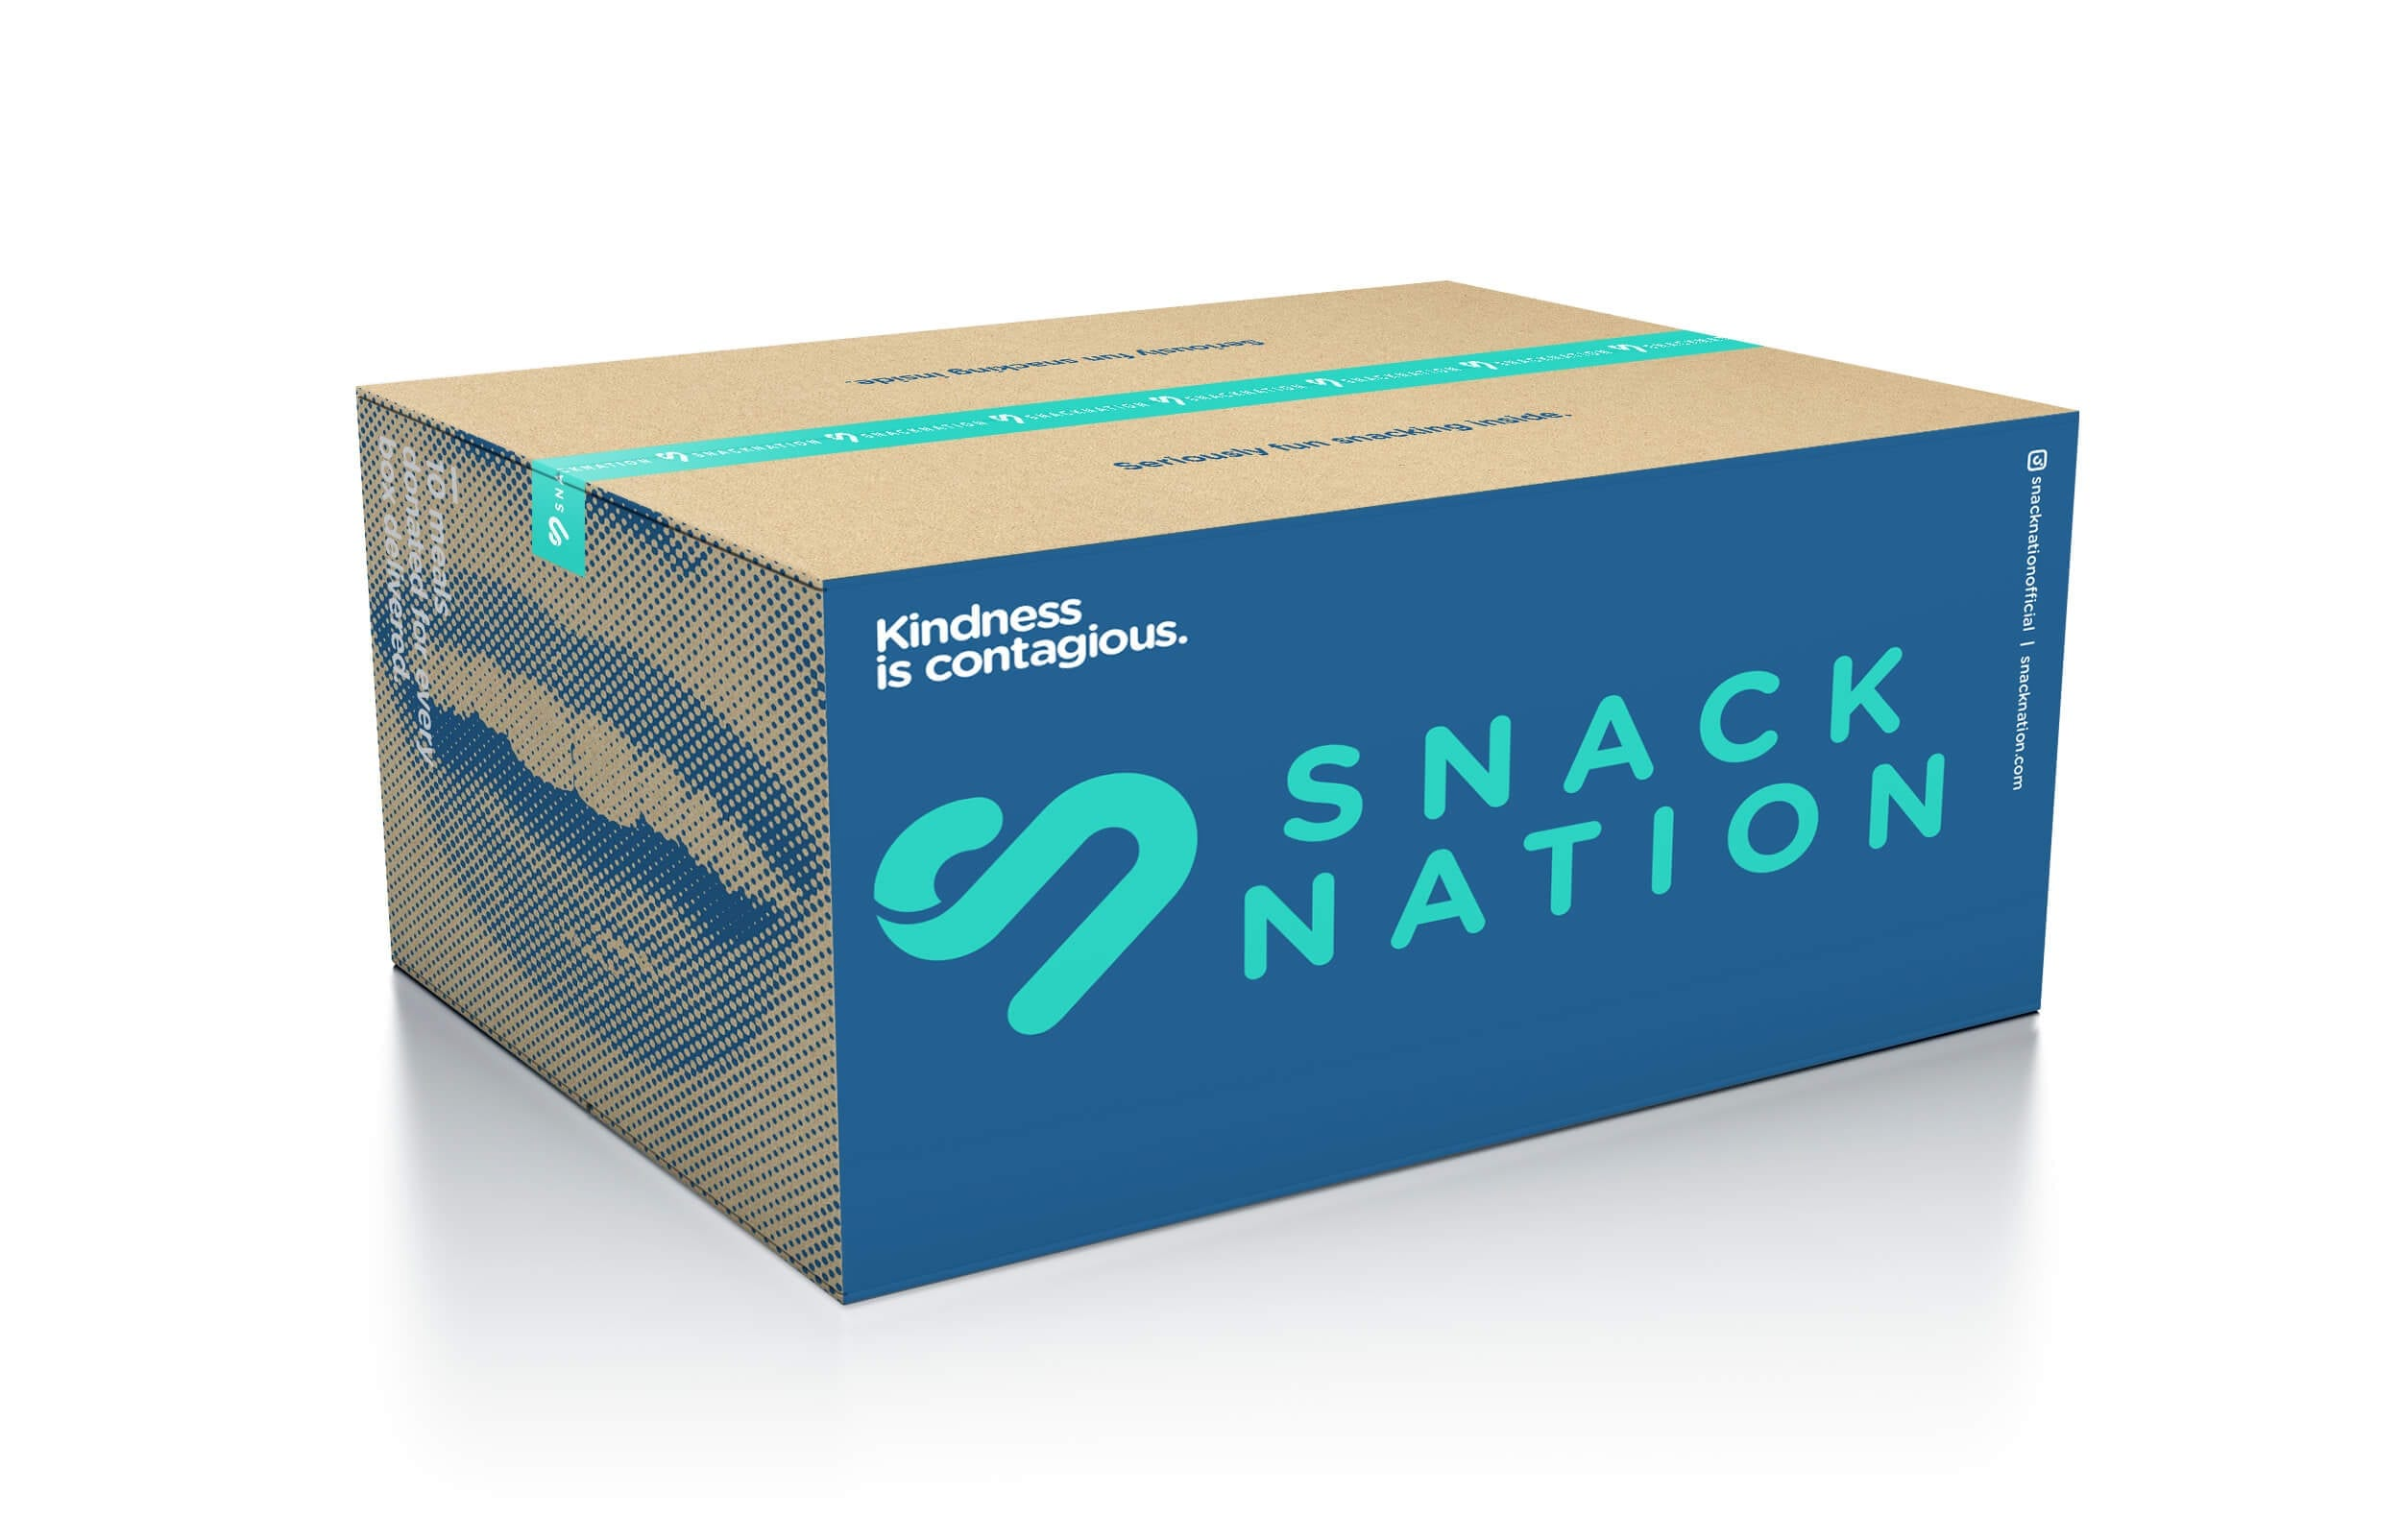 snacknation-box-mockup-back-v1